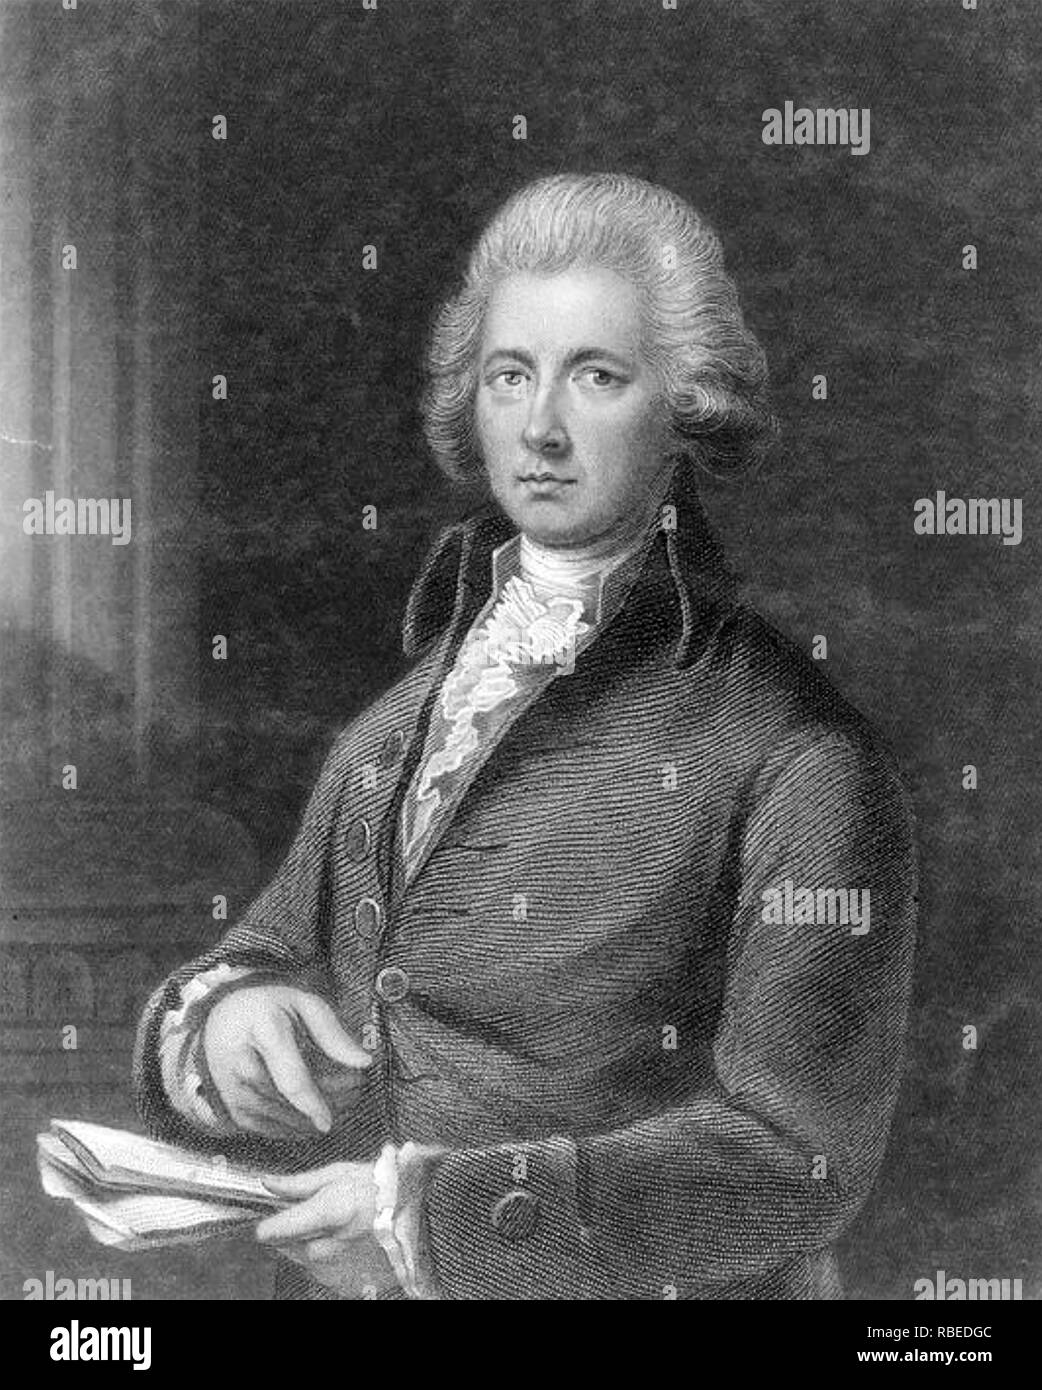 WILLIAM PITT THE YOUNGER (1759-1806) British Tory Prime Minister Stock Photo